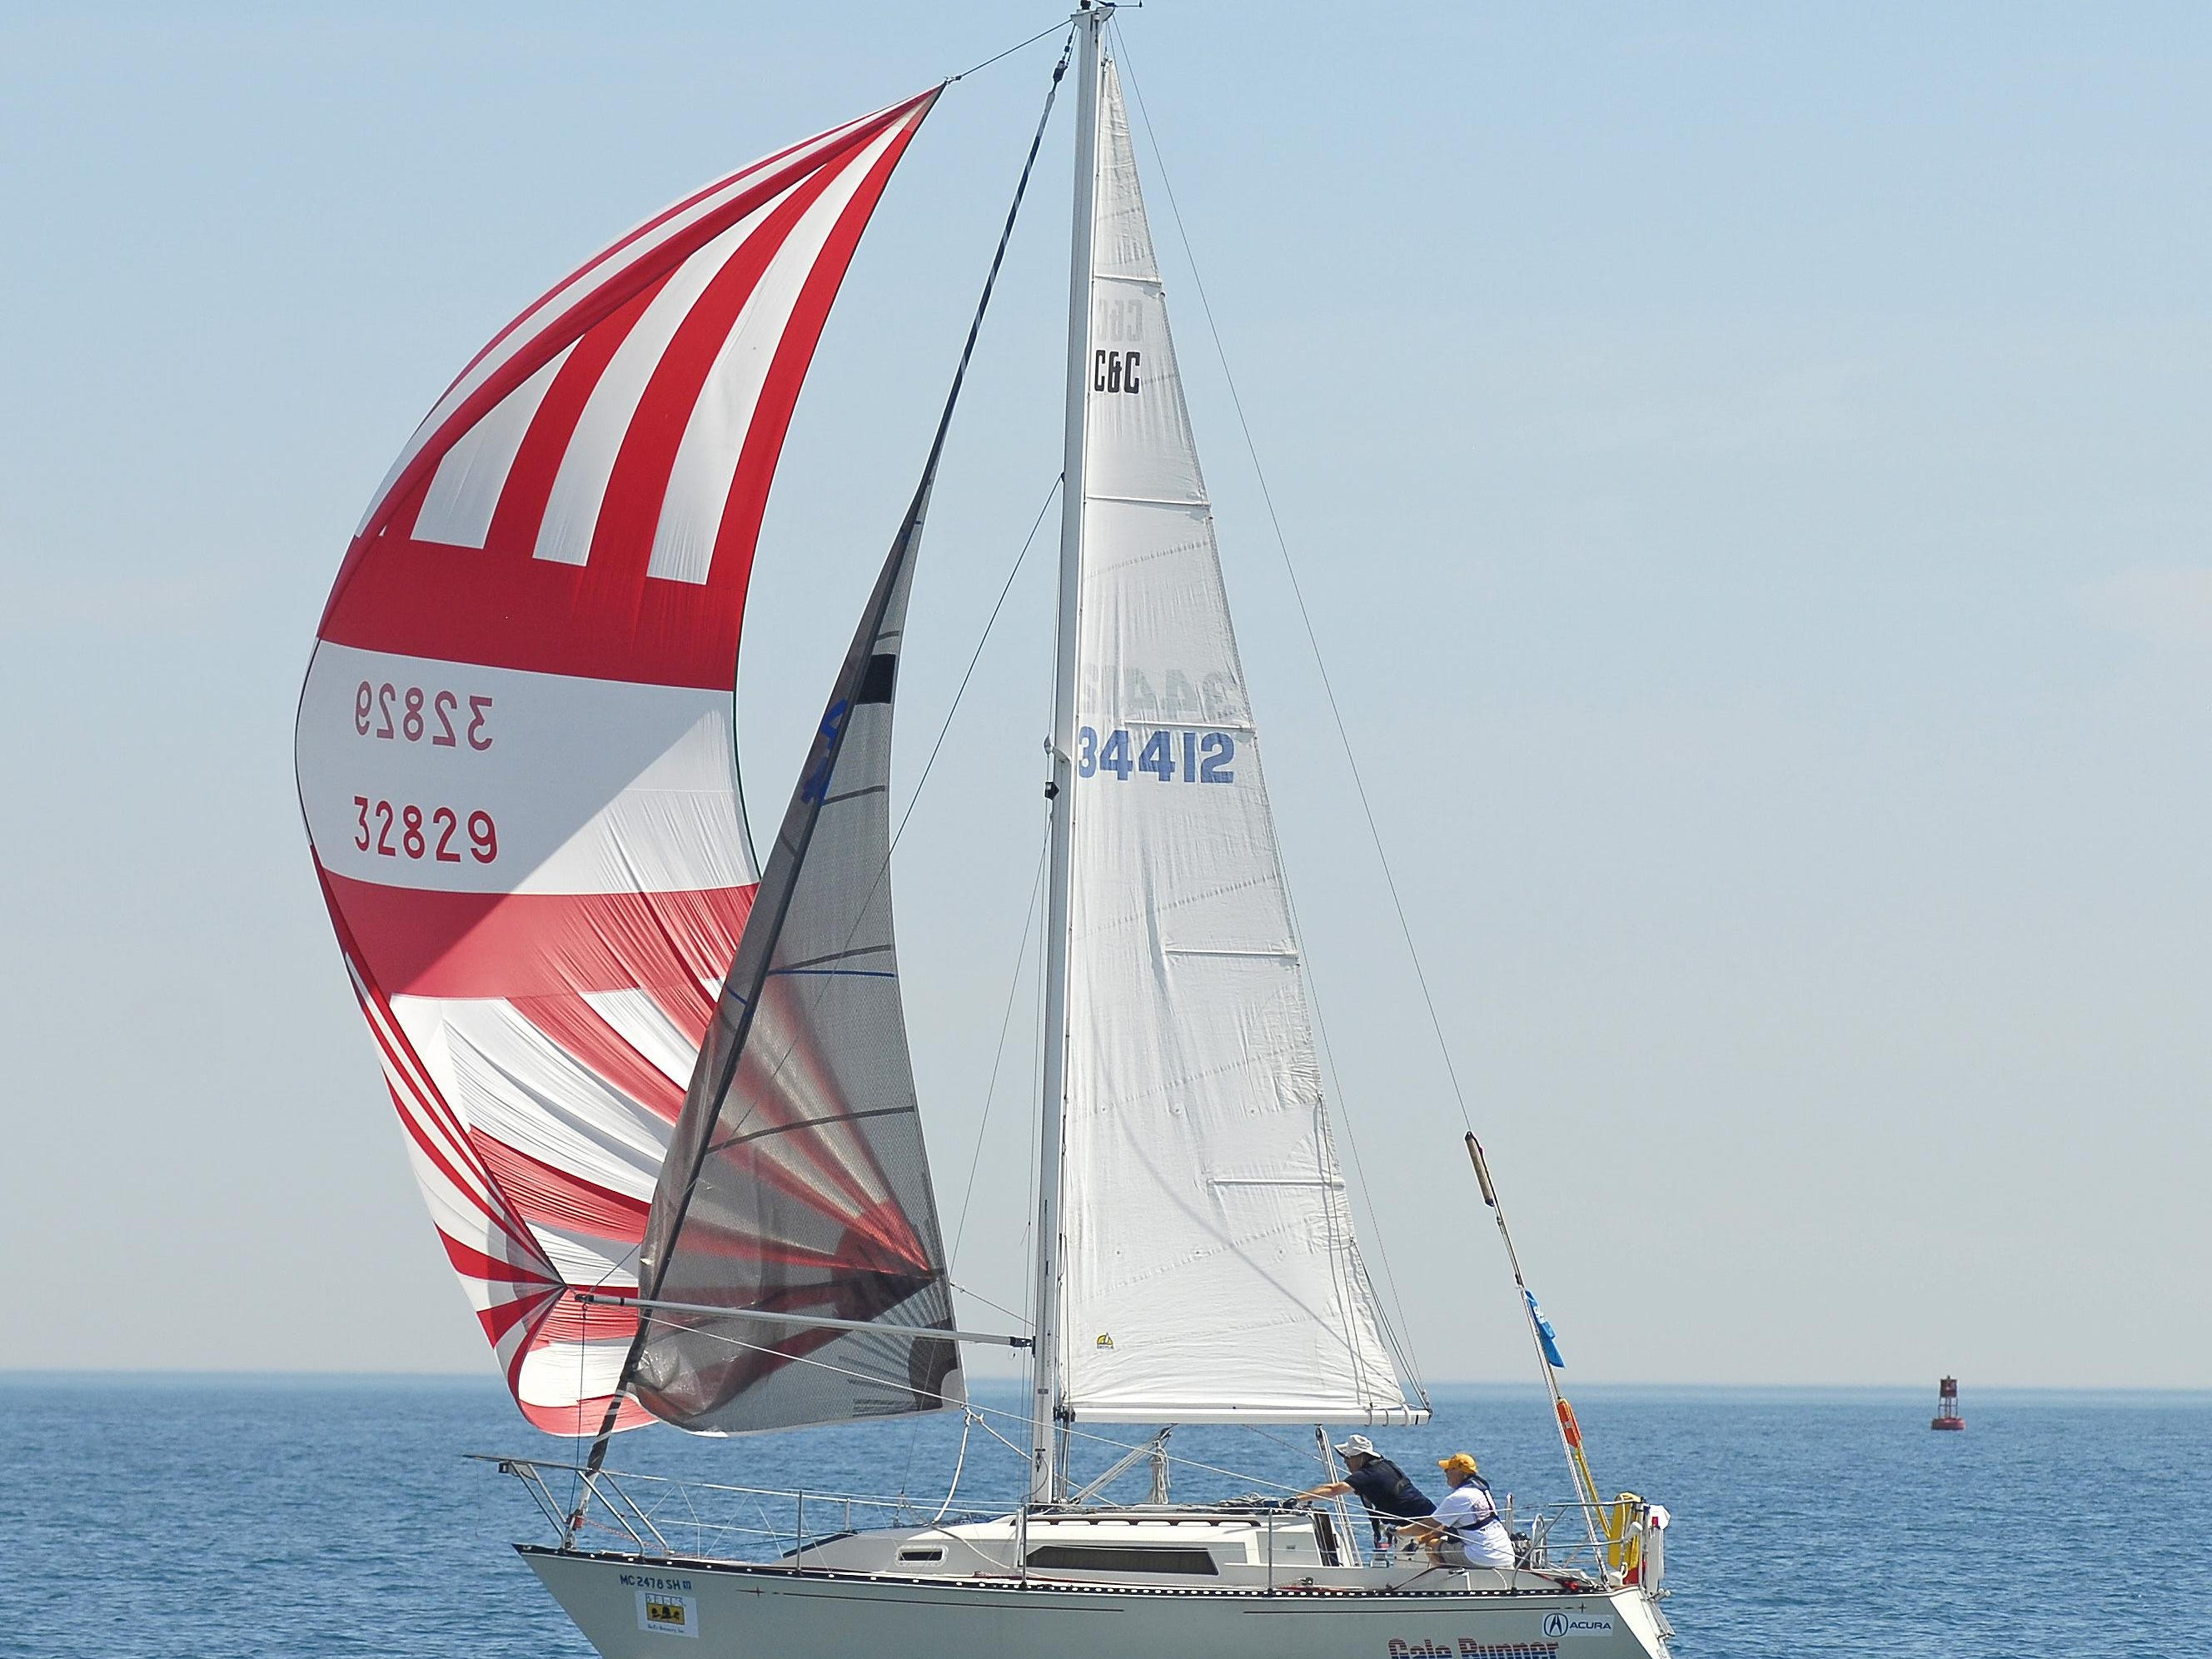 Gale Runner, of Great Lakes Sail Club, sets sail during last year's race